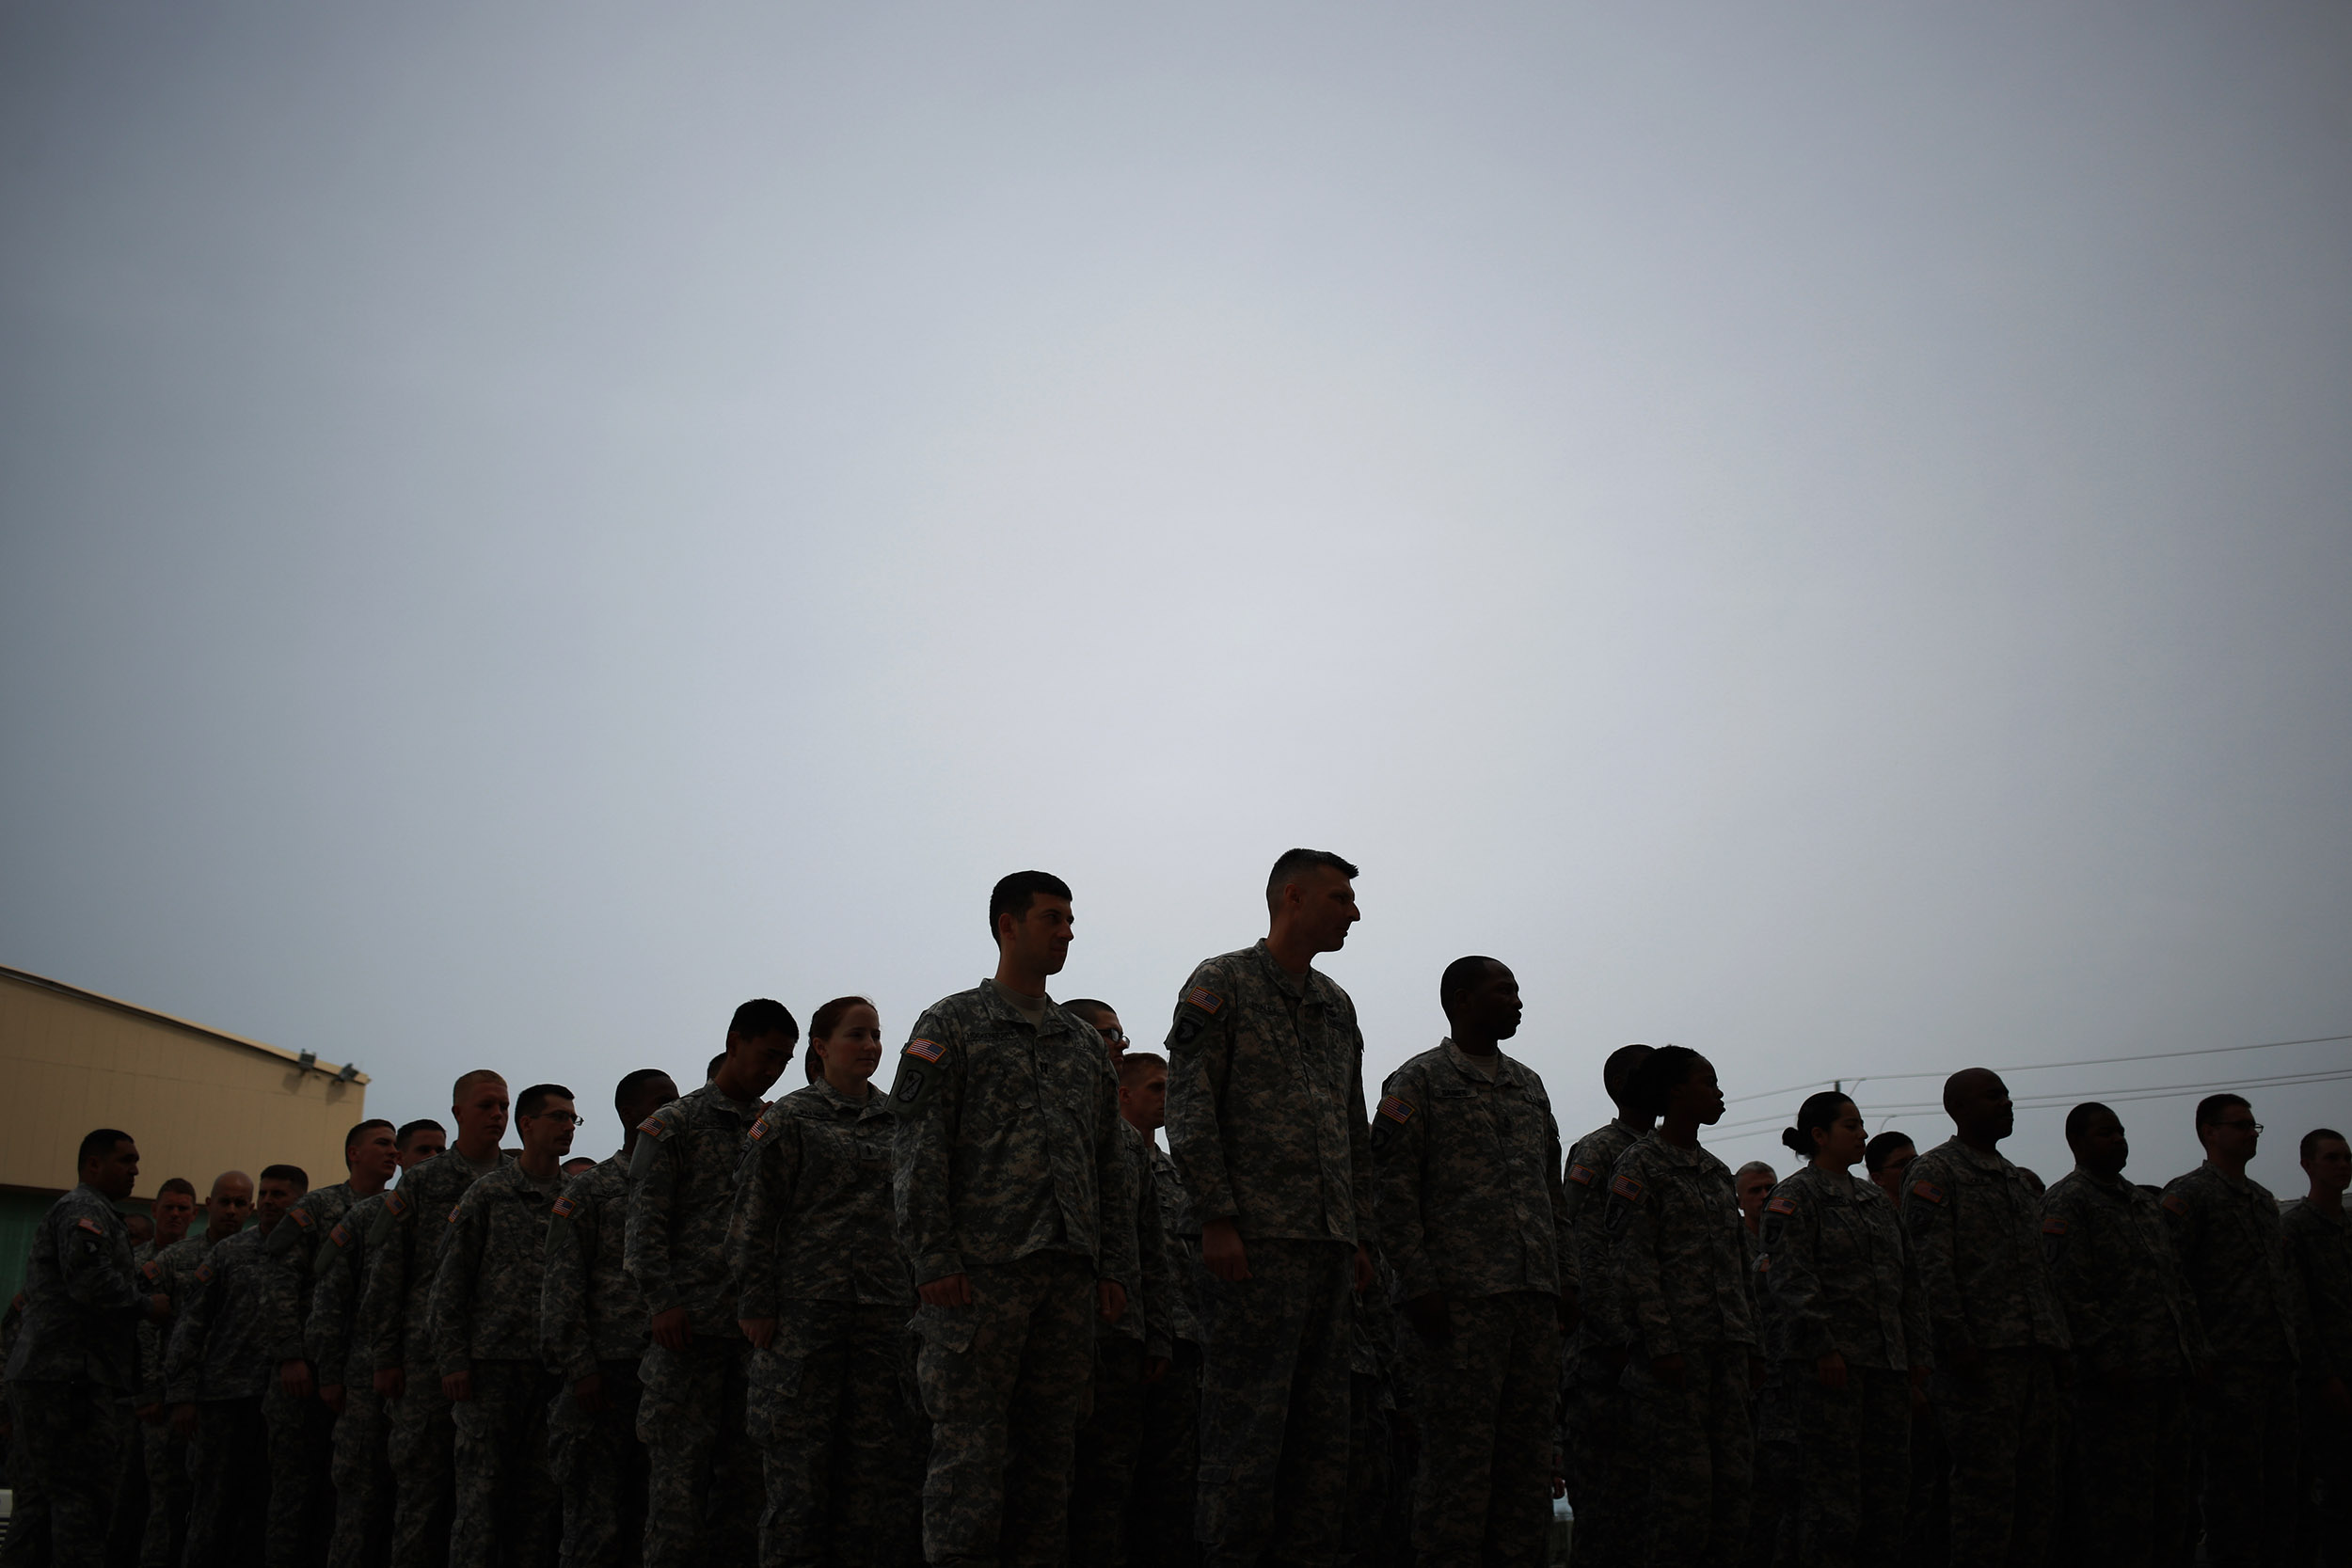 Soldiers from the U.S. Army's 101st Airborne Division stand in formation before marching in a homecoming ceremony at Fort Campbell, Kentucky, on March 21, 2015.